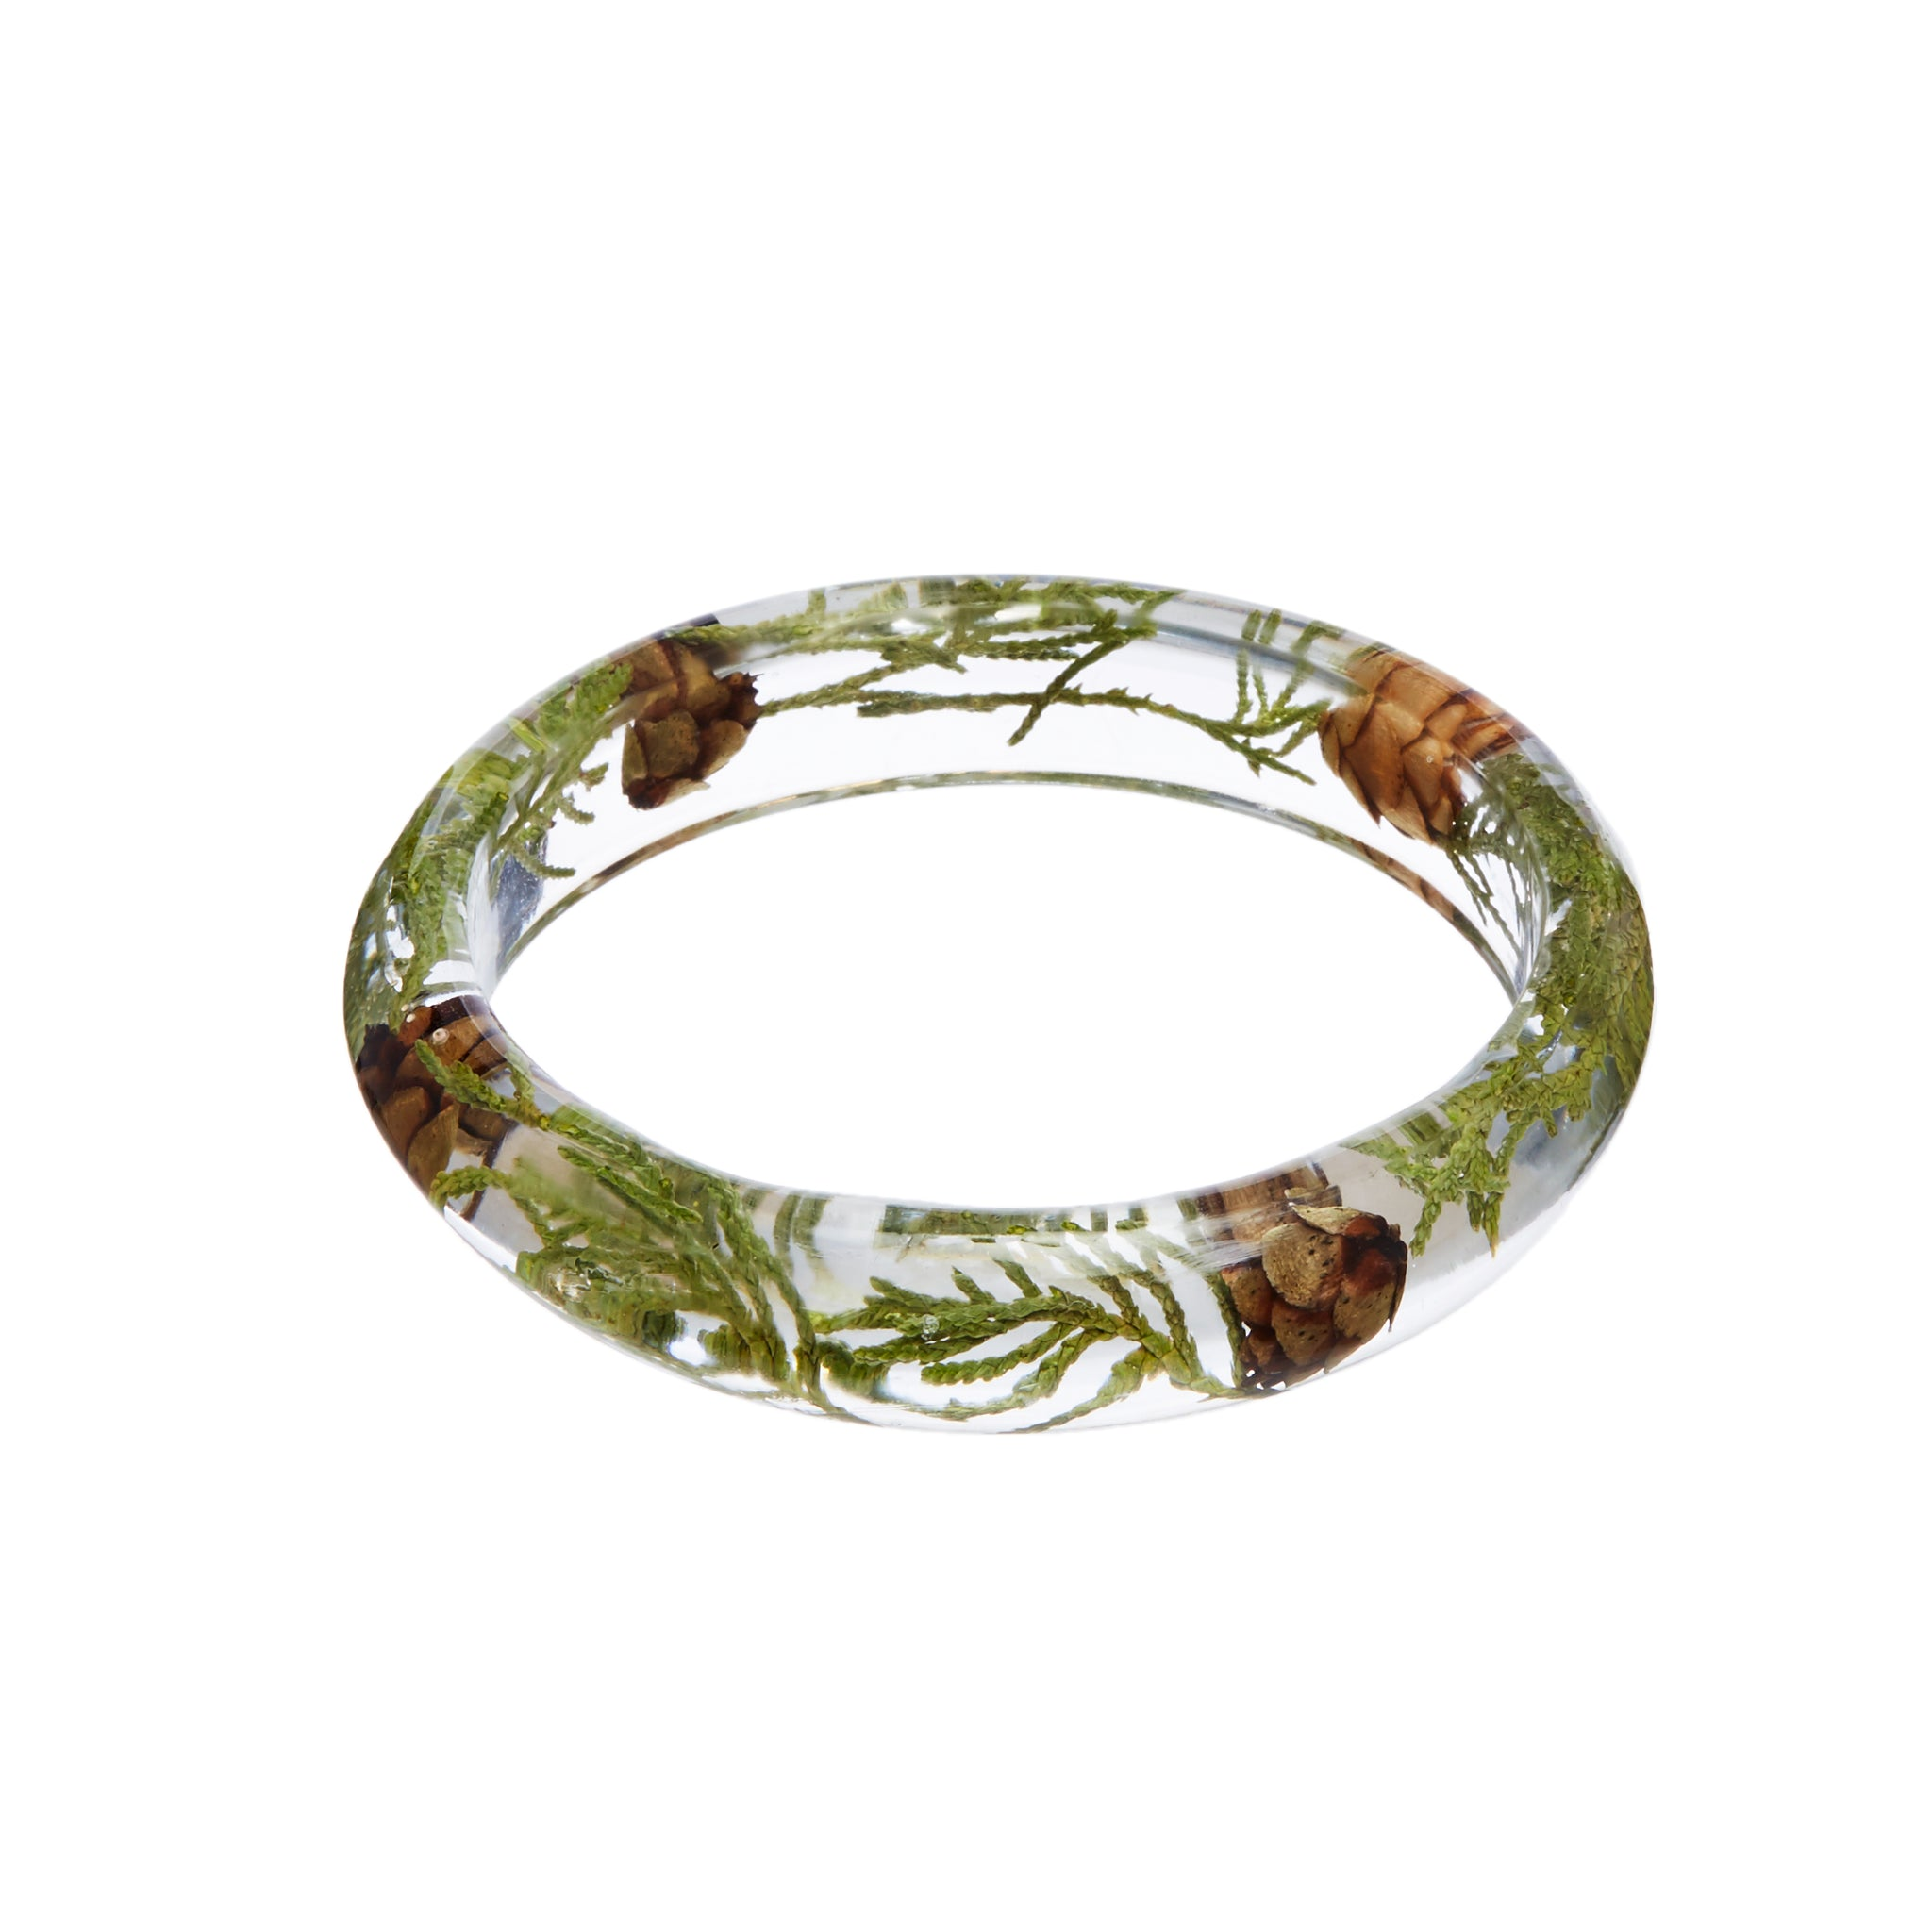 Woodland Resin Bangle, Botanical bangle bracelet, Pine cone and greens bracelet